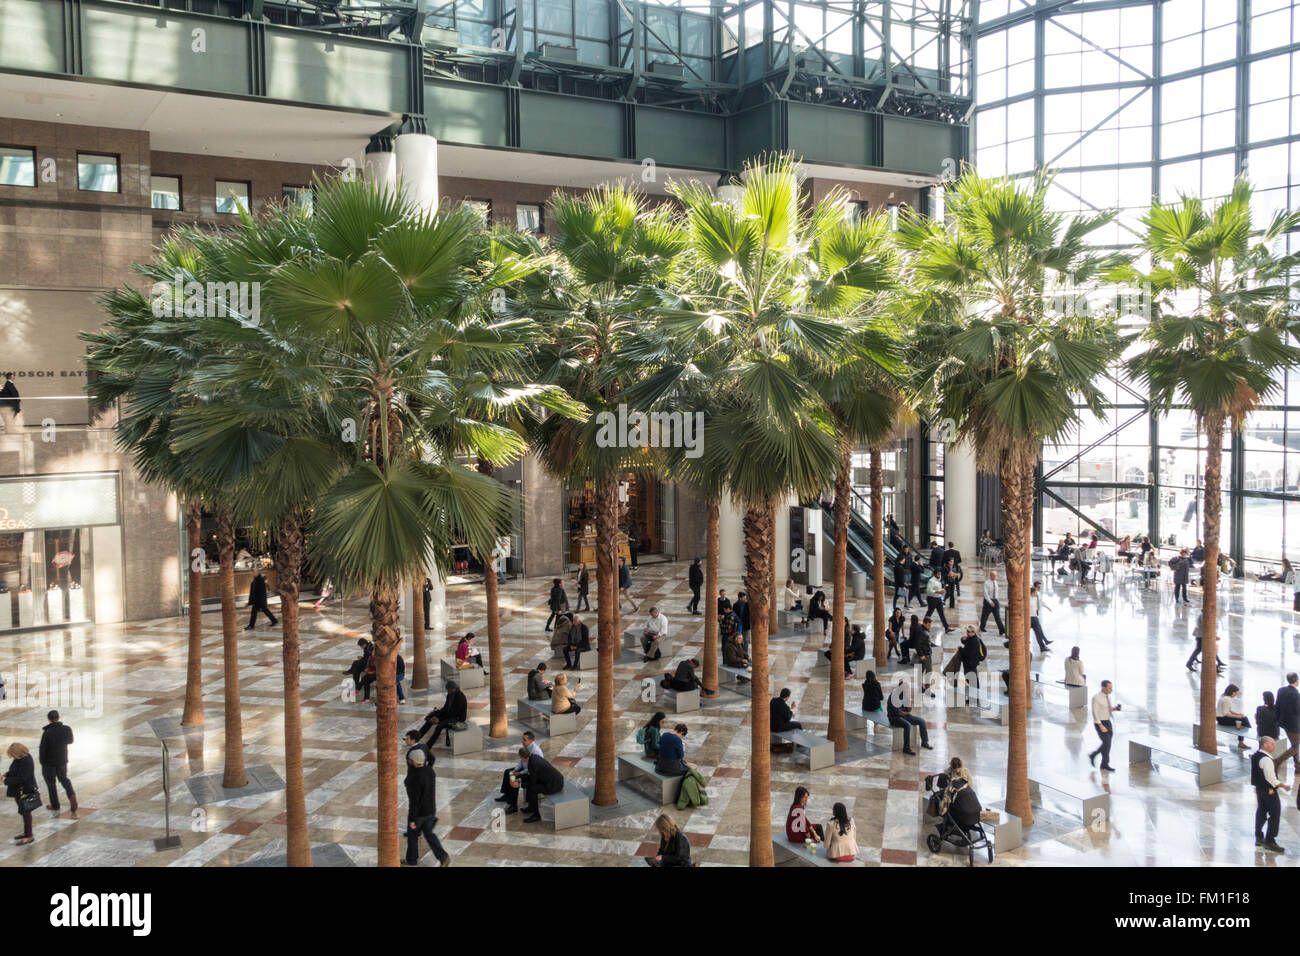 The Winter Garden Atrium Brookfield Place In Battery Park City